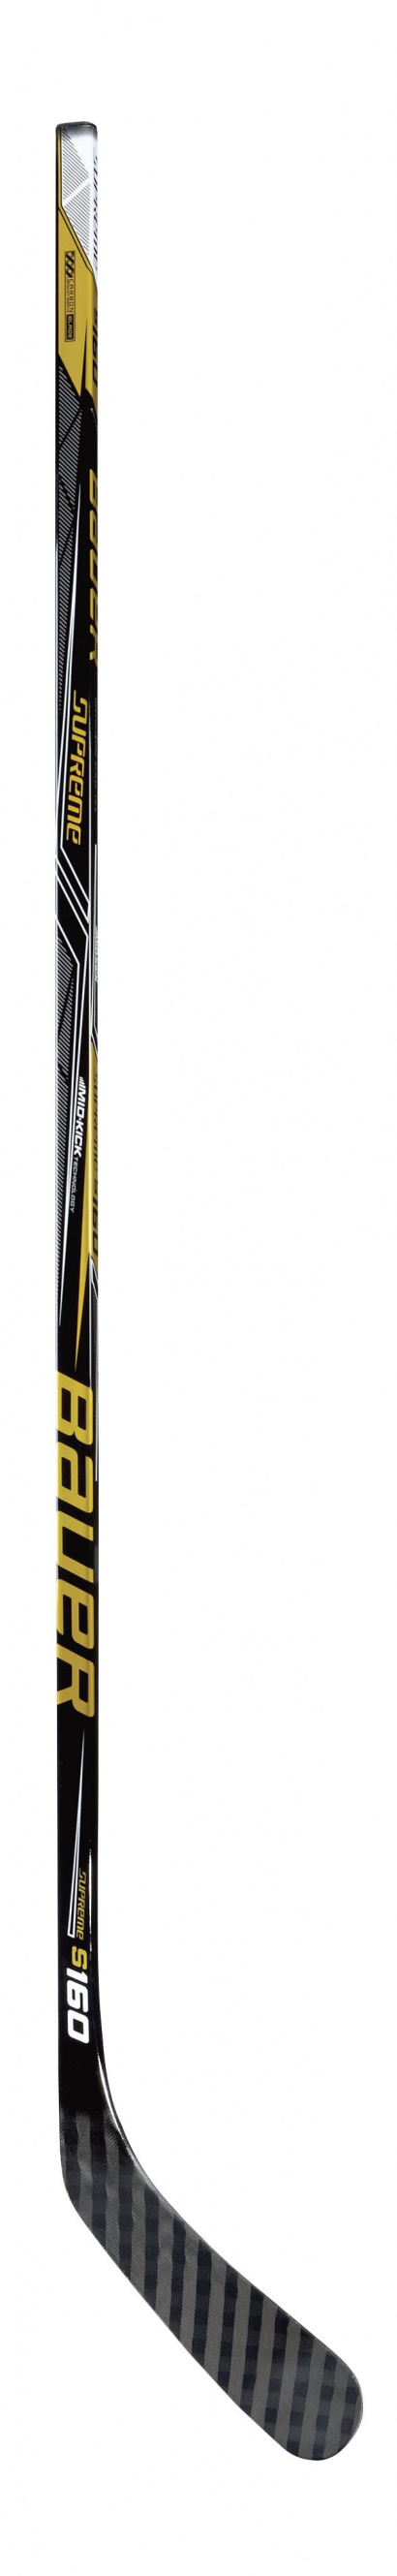 Schläger Bauer SUPREME S160 Grip Jr / Junior 52